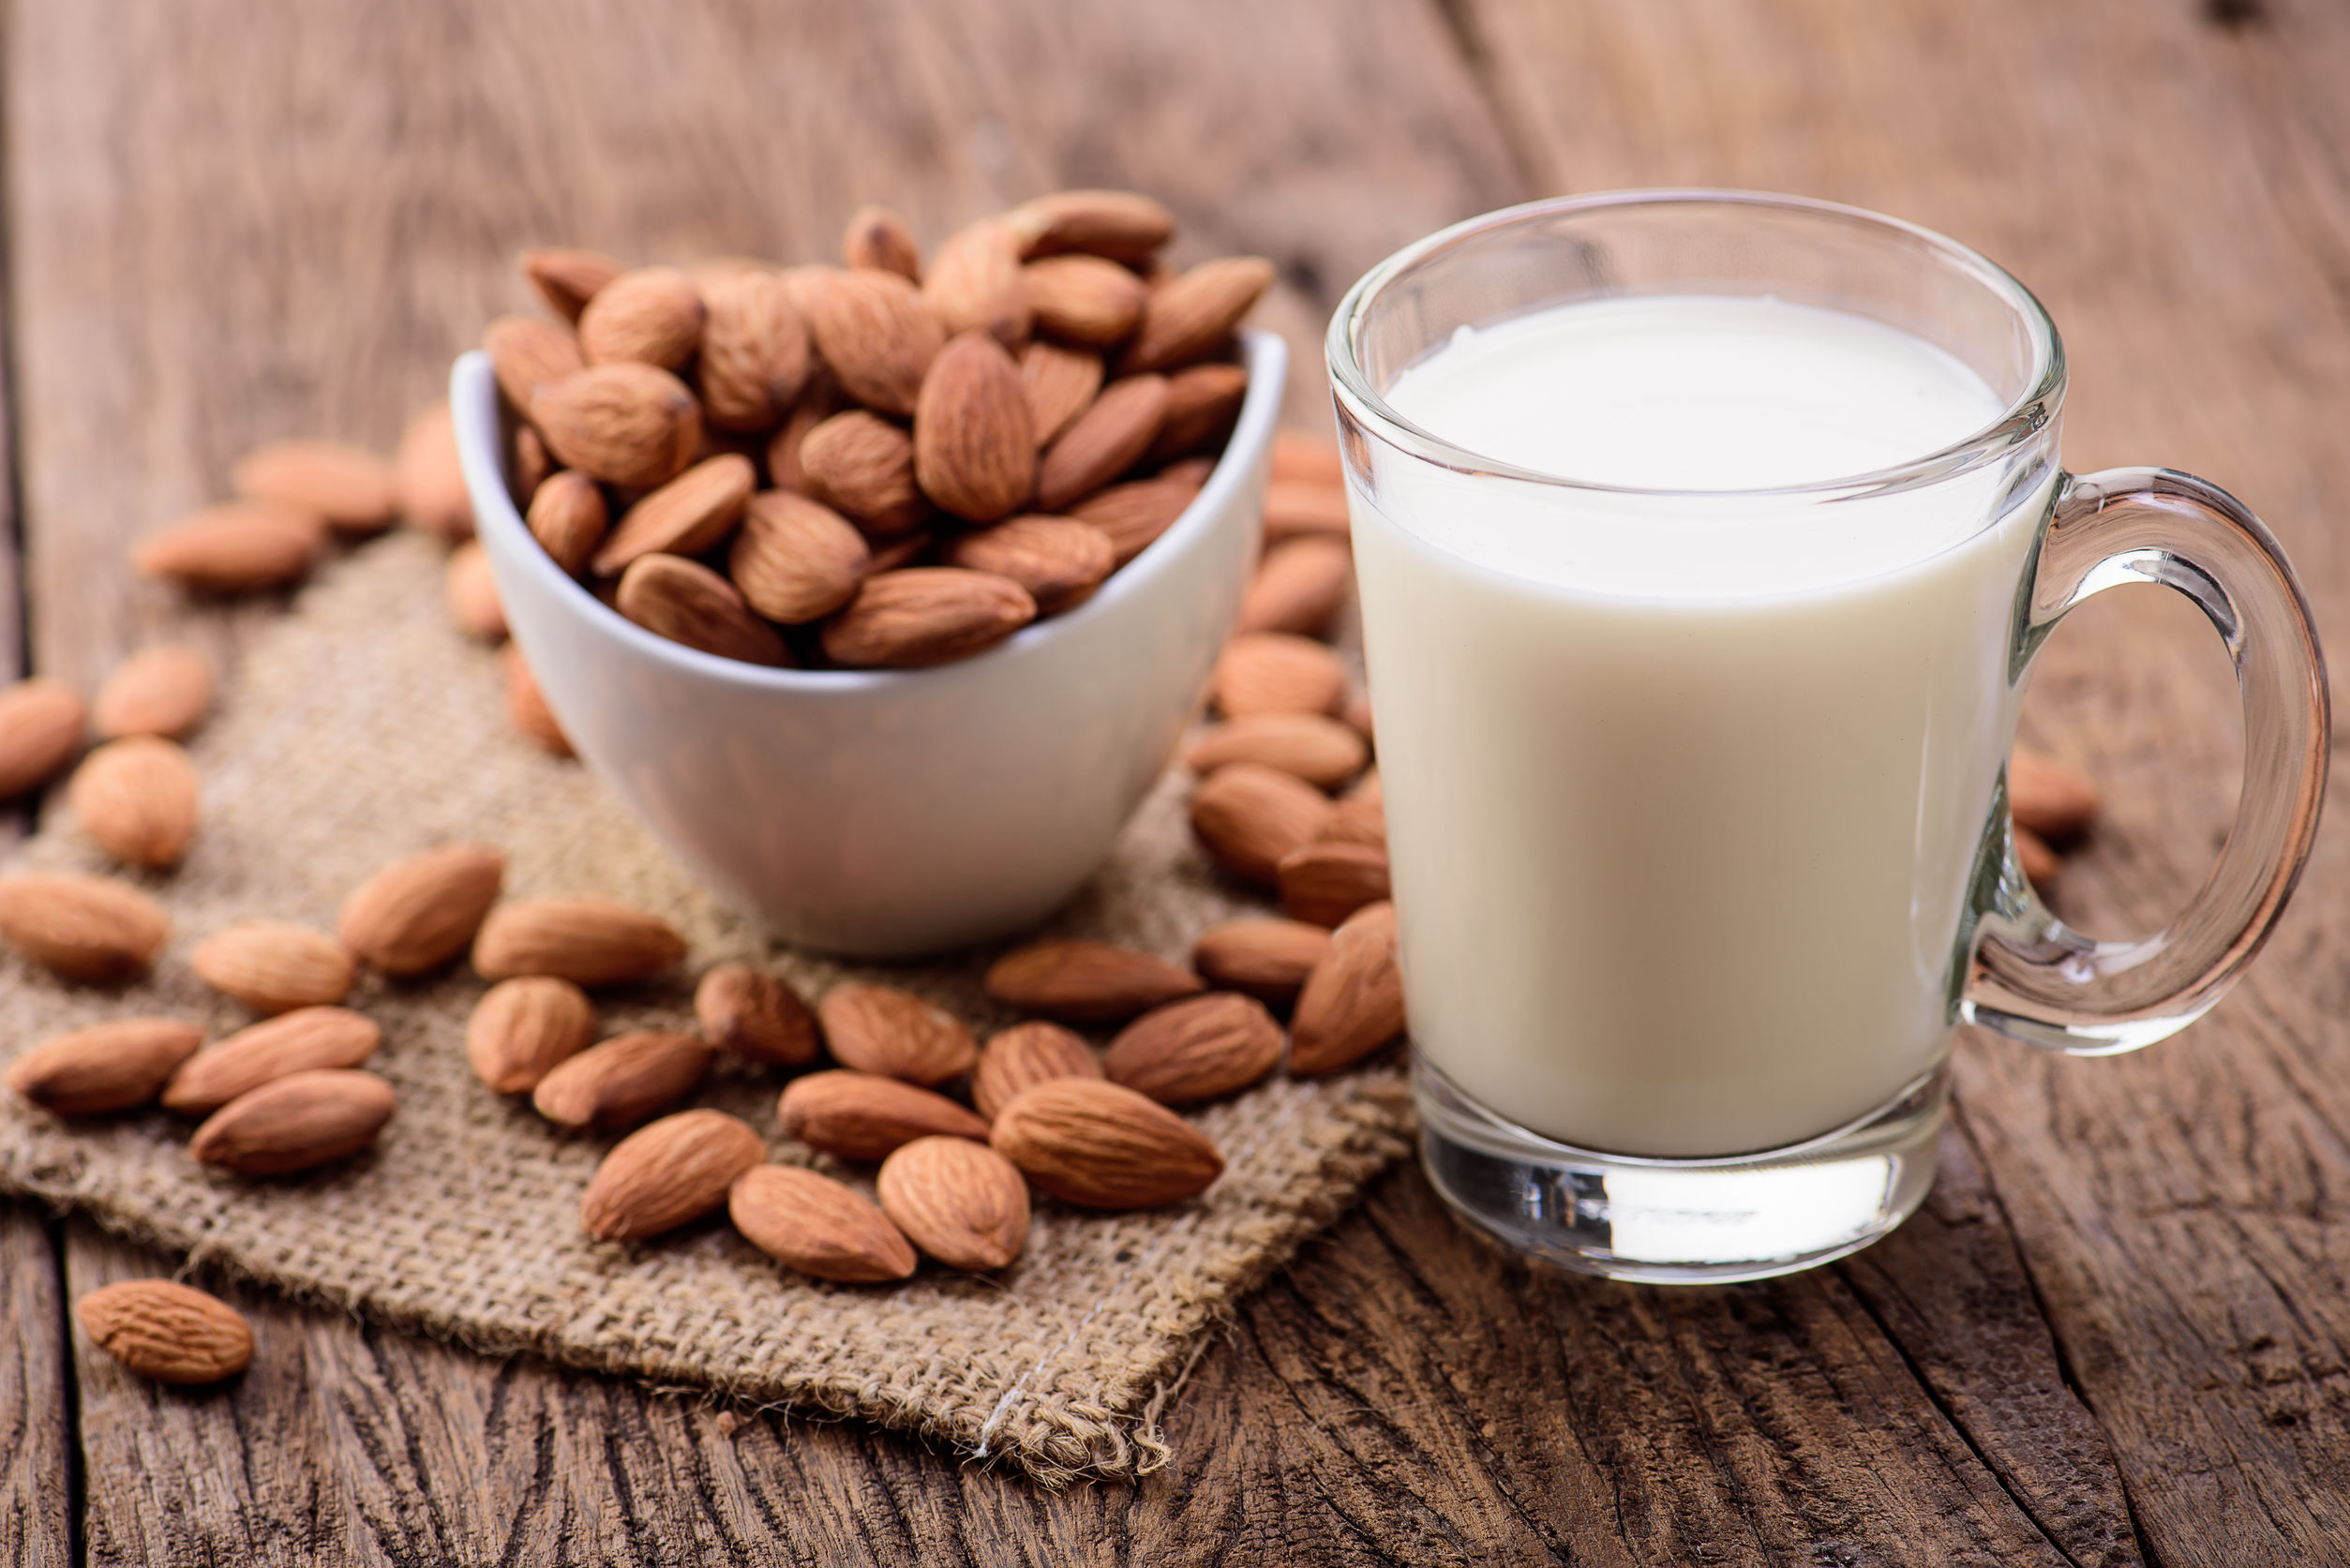 Best Almond Milk of 2021: The ultimate guide